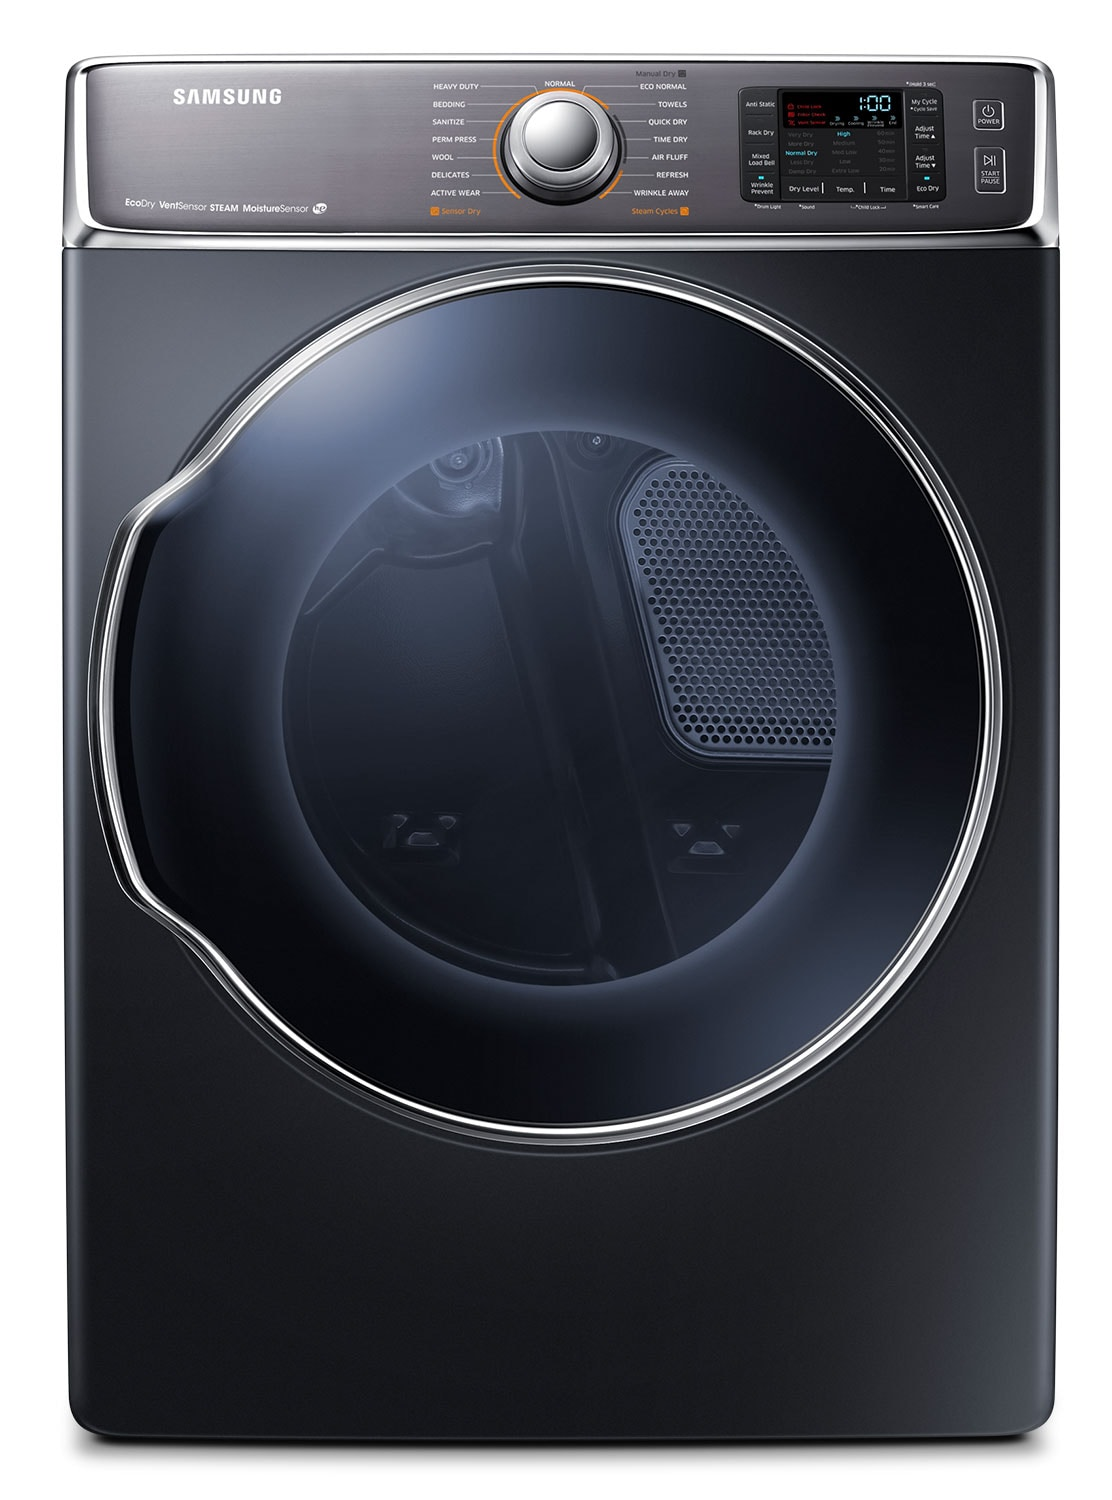 Samsung Charcoal Electric Dryer (9.5 Cu. Ft.) - DV56H9100EG